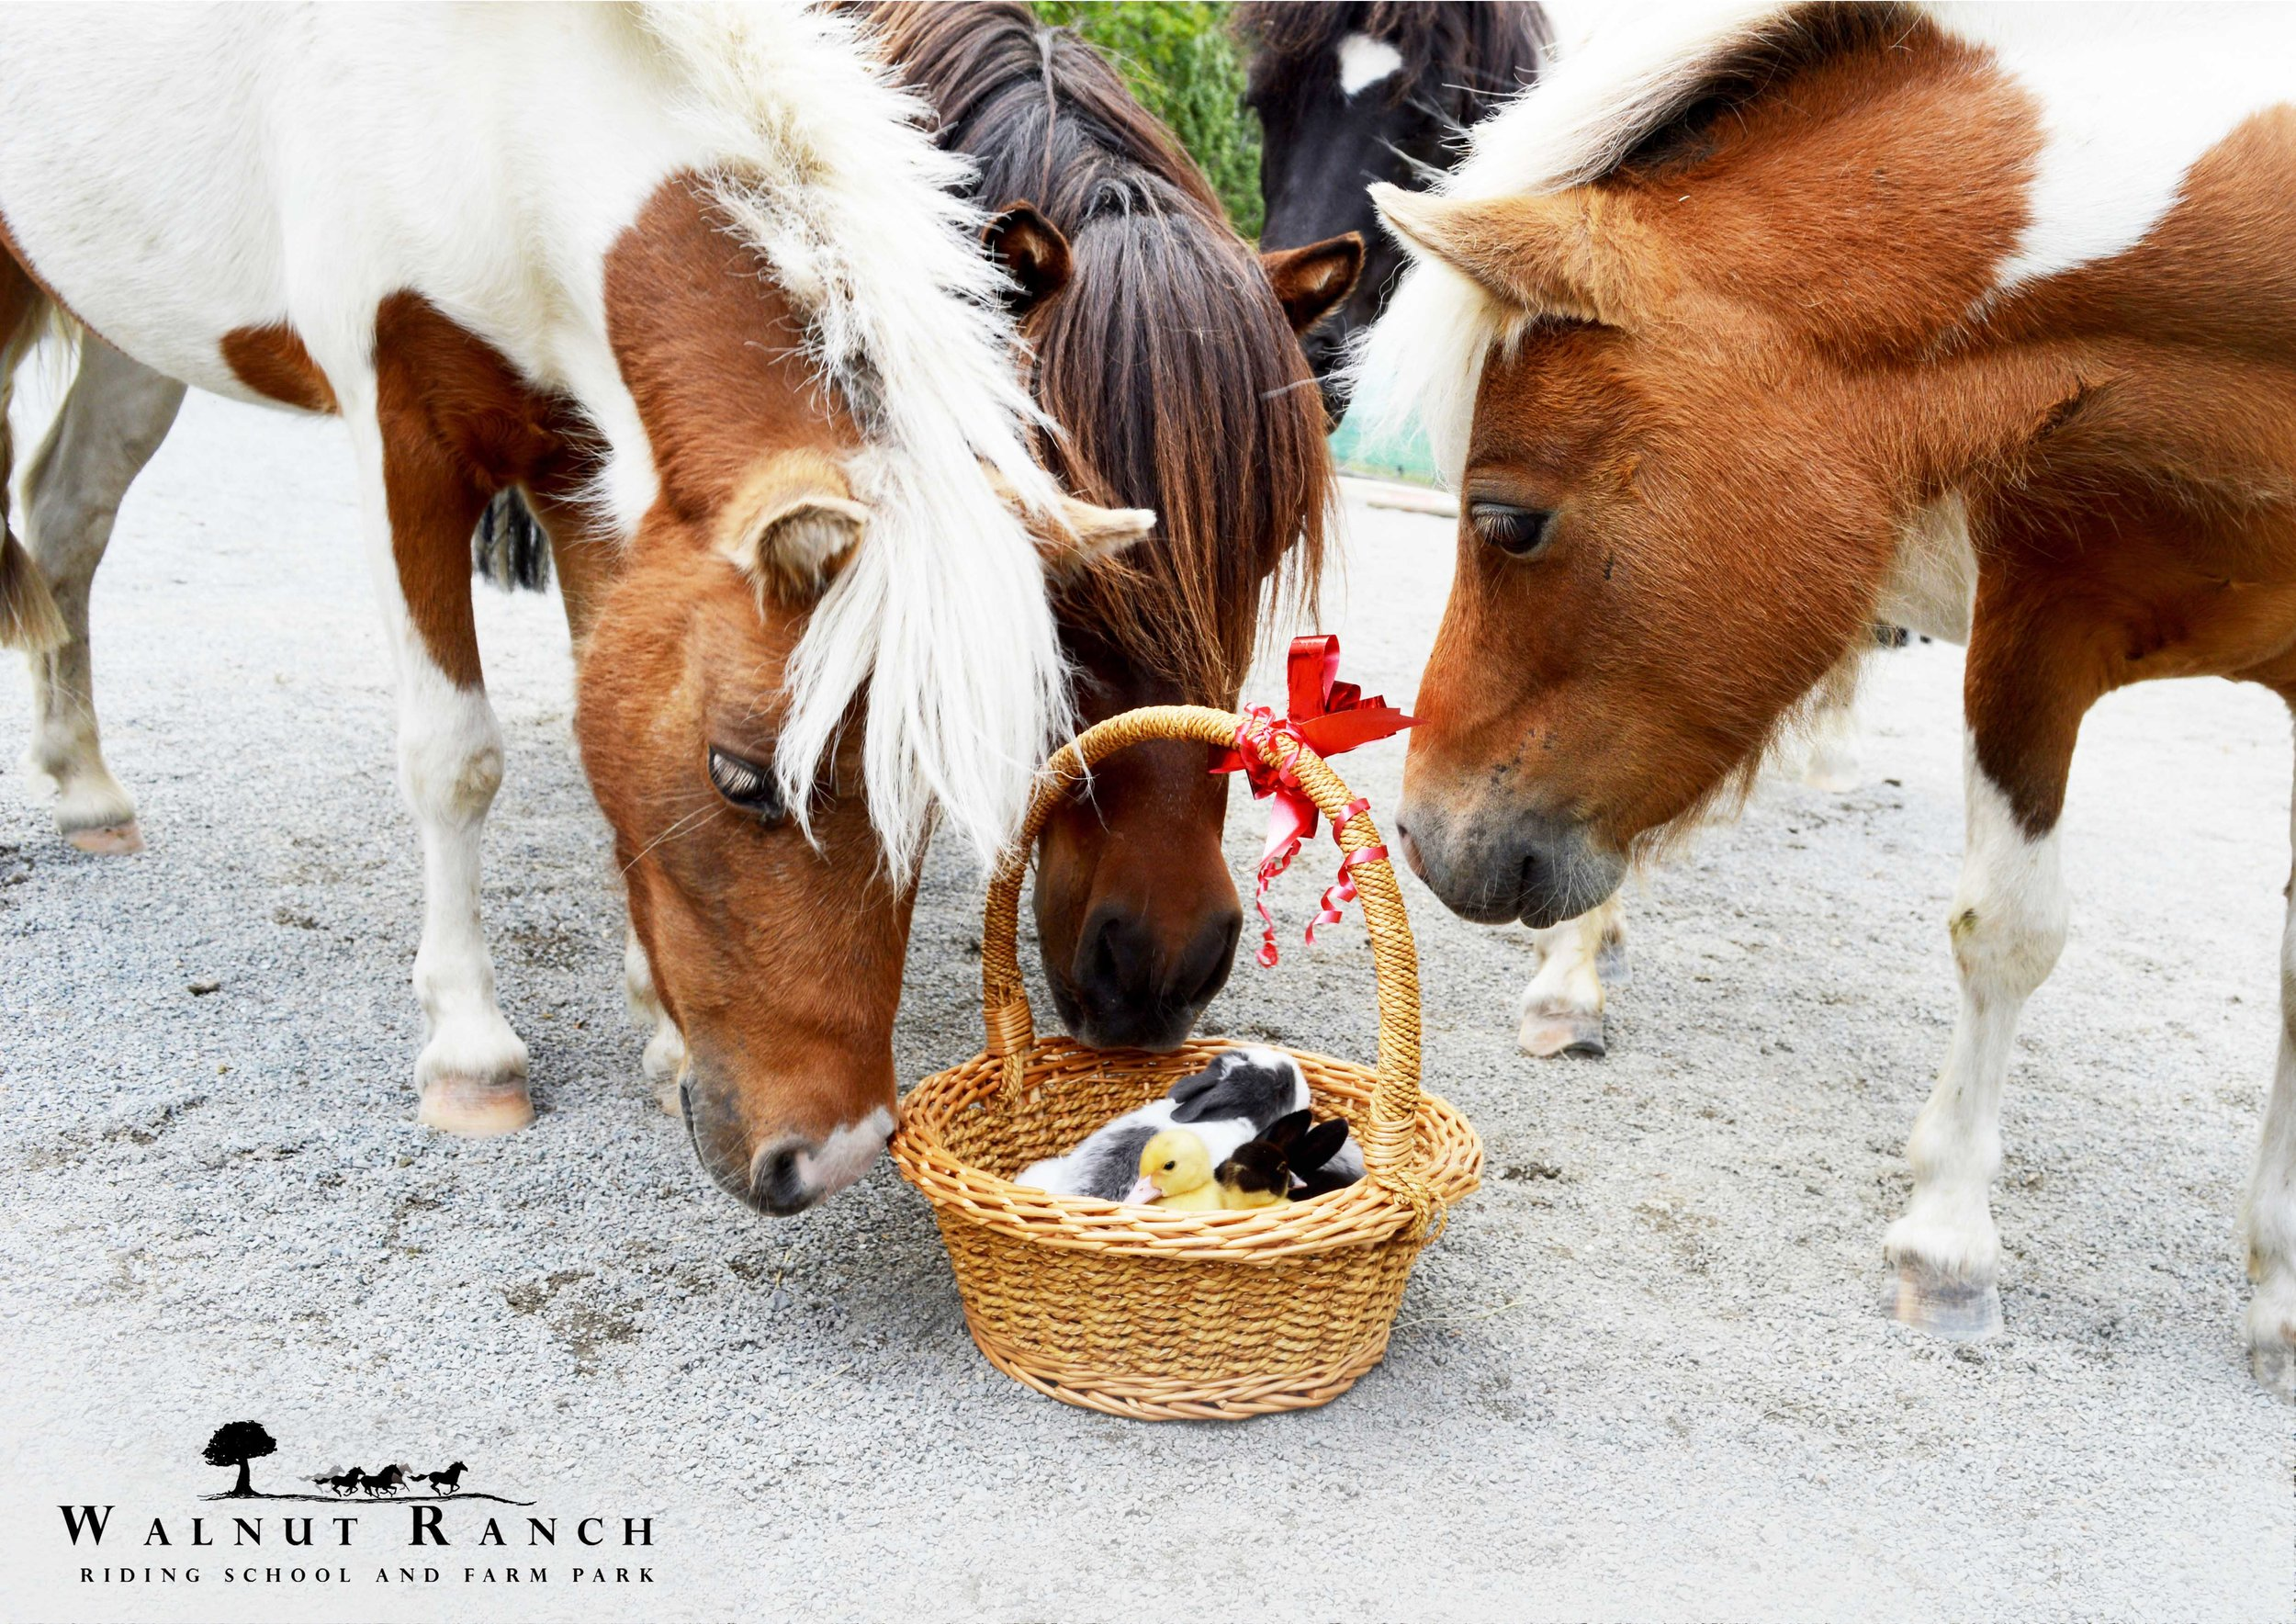 Ponies and the basket of Babies